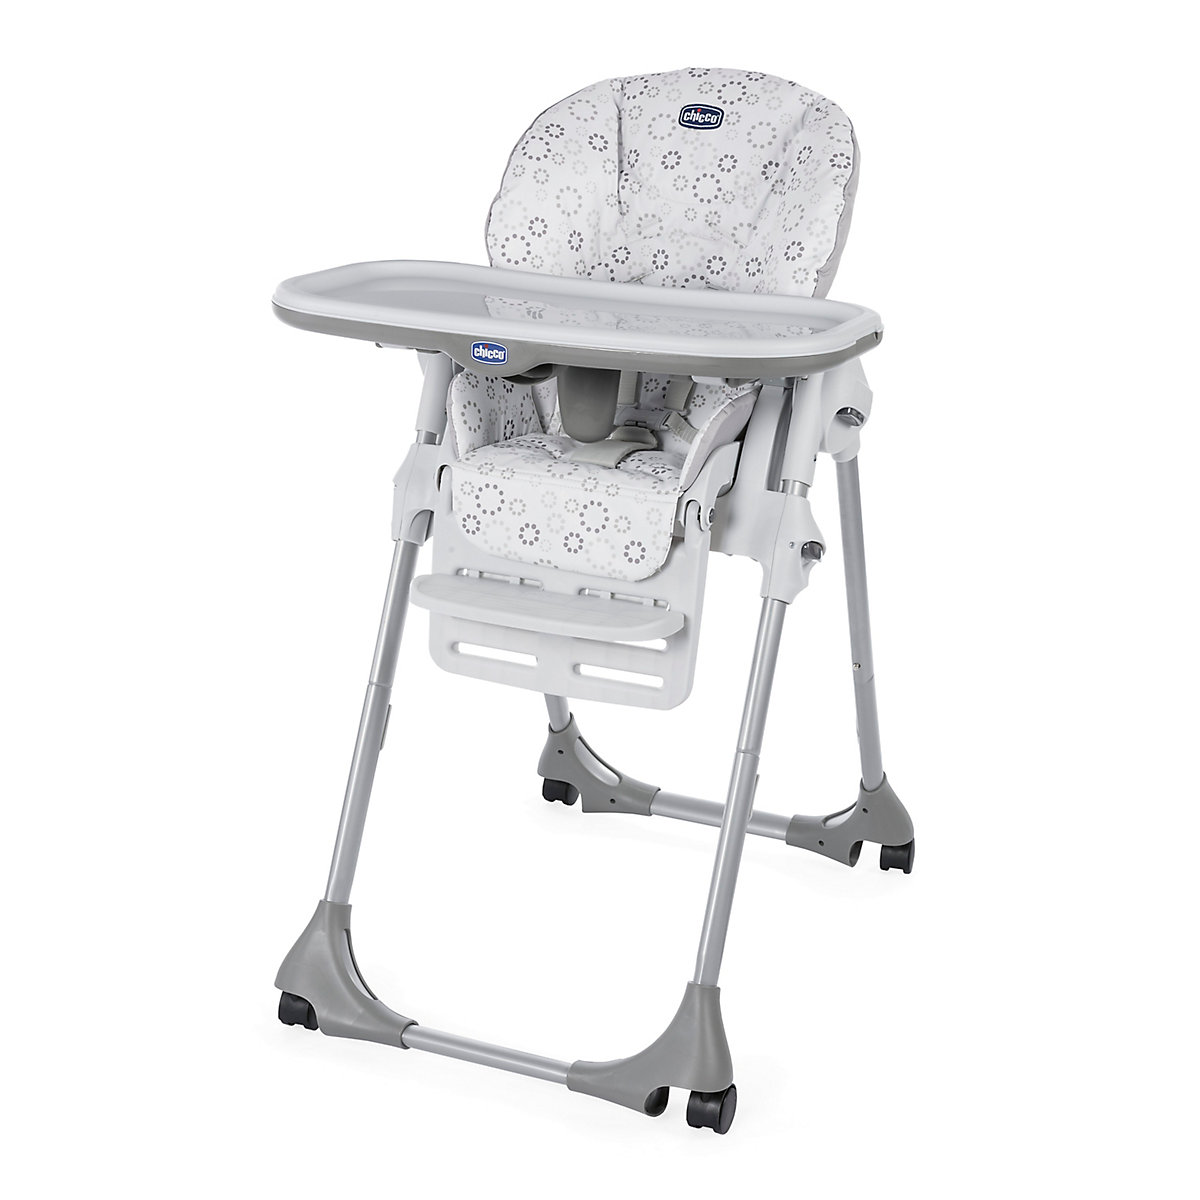 Chicco polly easy highchair - mirage *exclusive to mothercare*